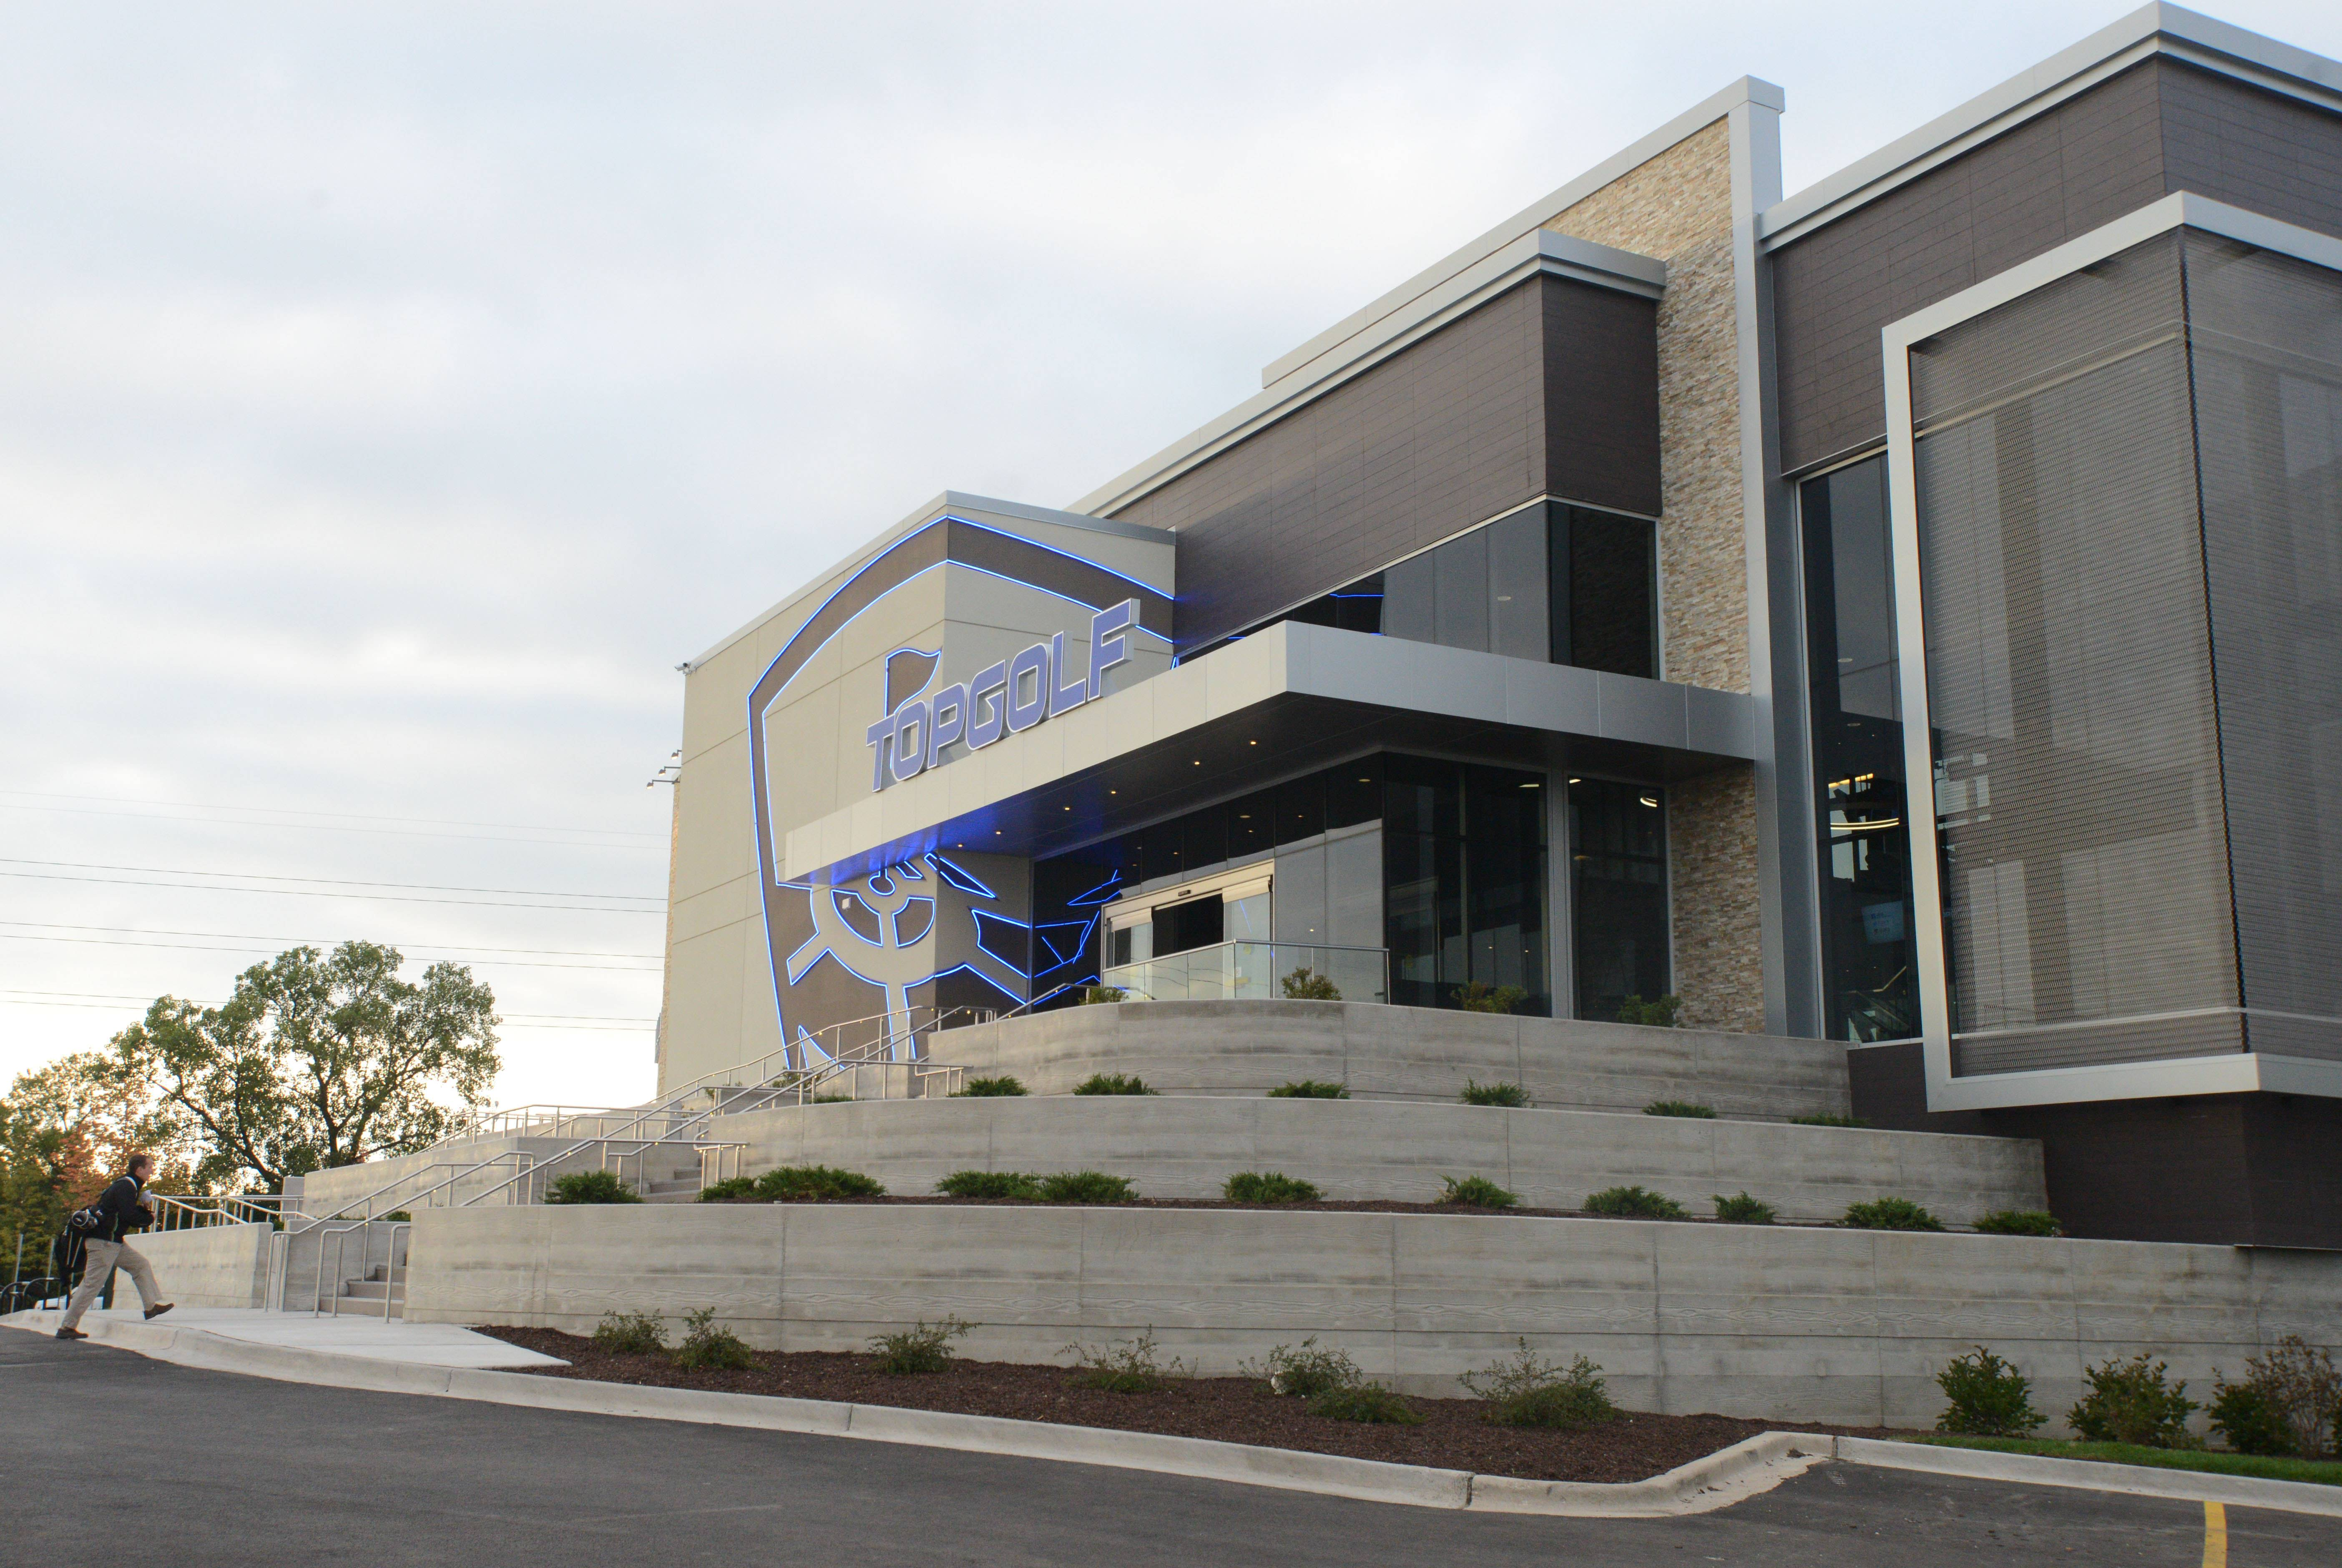 Topgolf, which has this location in Naperville, has been announced as the first entity moving to the redeveloped former Motorola Solutions campus in Schaumburg.